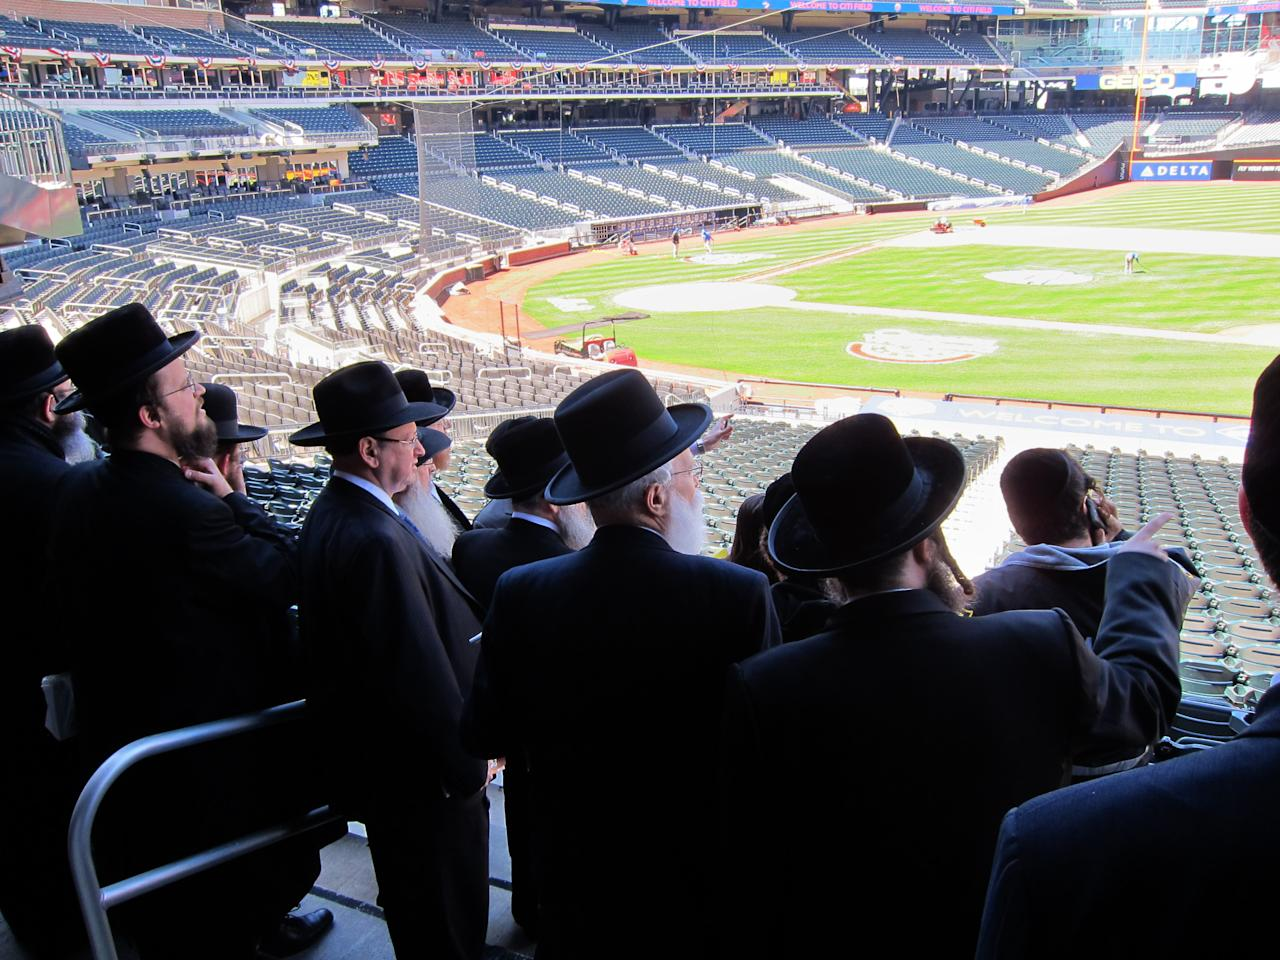 In this April 3, 2012 photo provided by VosIzNeias.com, a group of Ultra Orthodox Jews who believe that the Internet threatens their way of life, check out the facilities at New York's Citi Field, which they ultimately rented for an unprecedented gathering. The upcoming May 20 rally at the Mets' Stadium will address how to use modern technology in a religiously appropriate way. More than 40,000 ultra-Orthodox Jewish men plan to pack Citi Field for the Sunday evening gathering on the dangers of the Internet, and organizers have also rented the nearby Arthur Ashe Stadium for the overflow crowd. (AP Photo/VosIzNeias.com) MANDATORY CREDIT